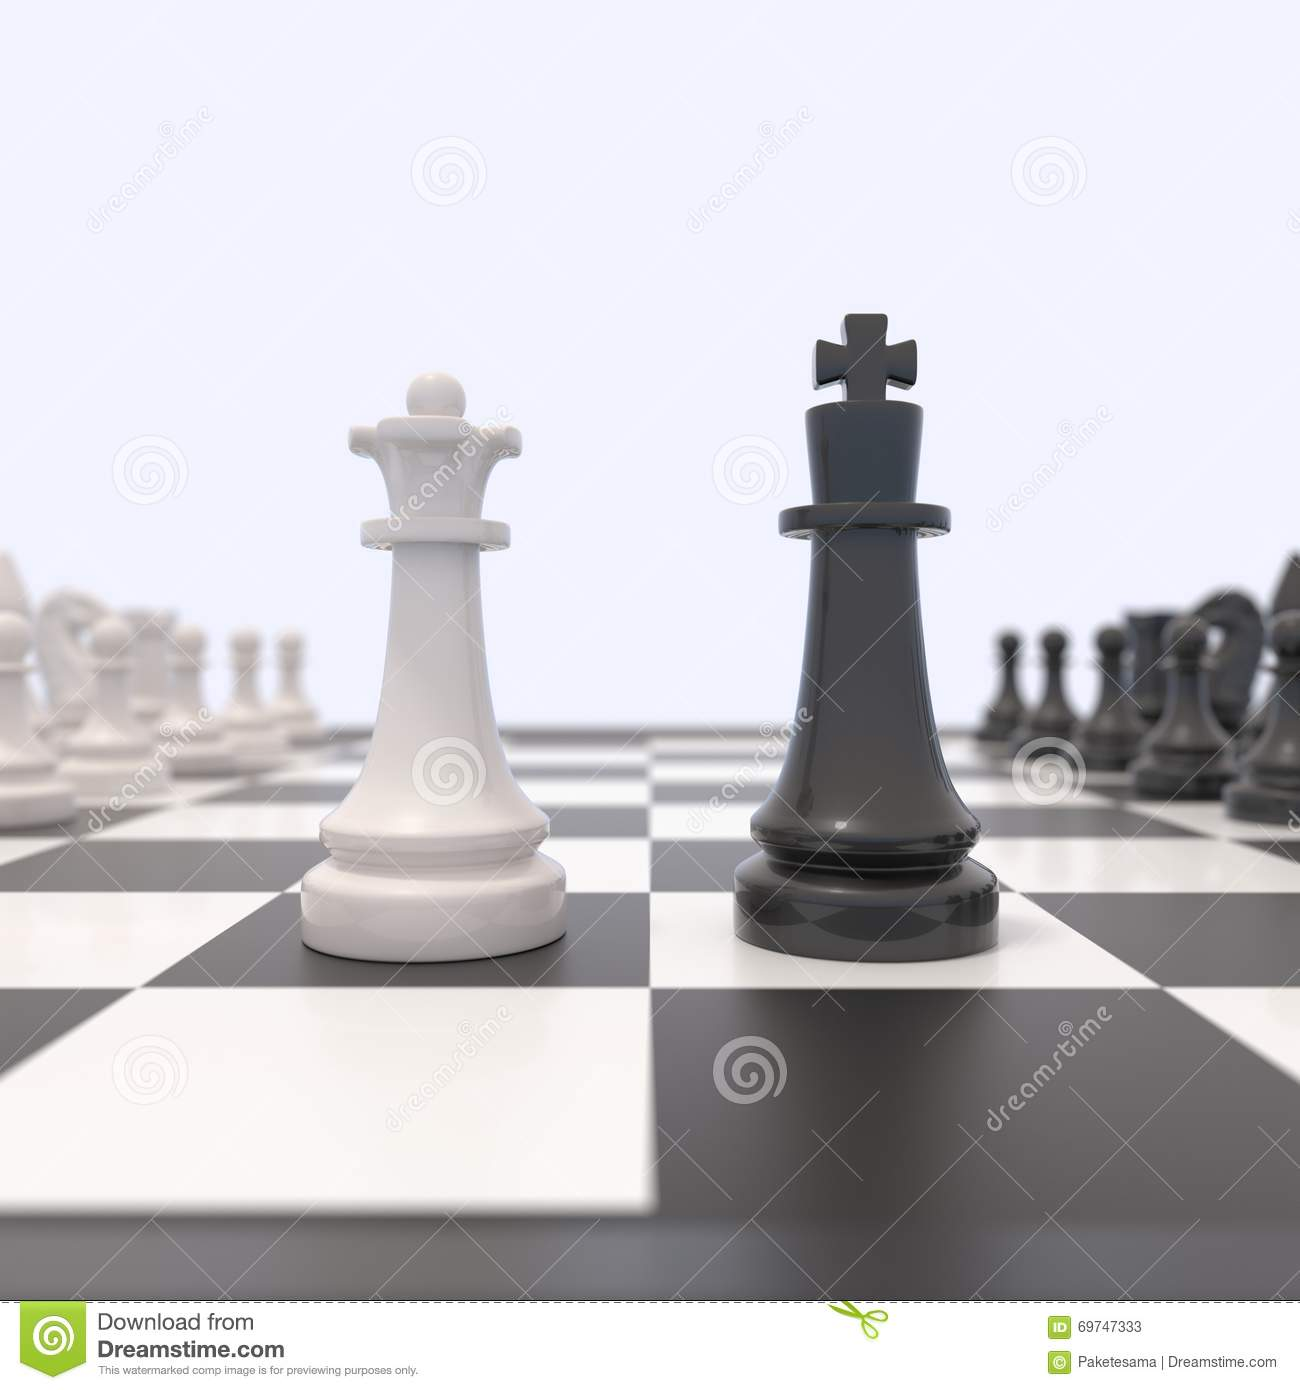 Black king and white queen facing each other confrontation between men and women feminism competition discussion agreement concept 3d illustration